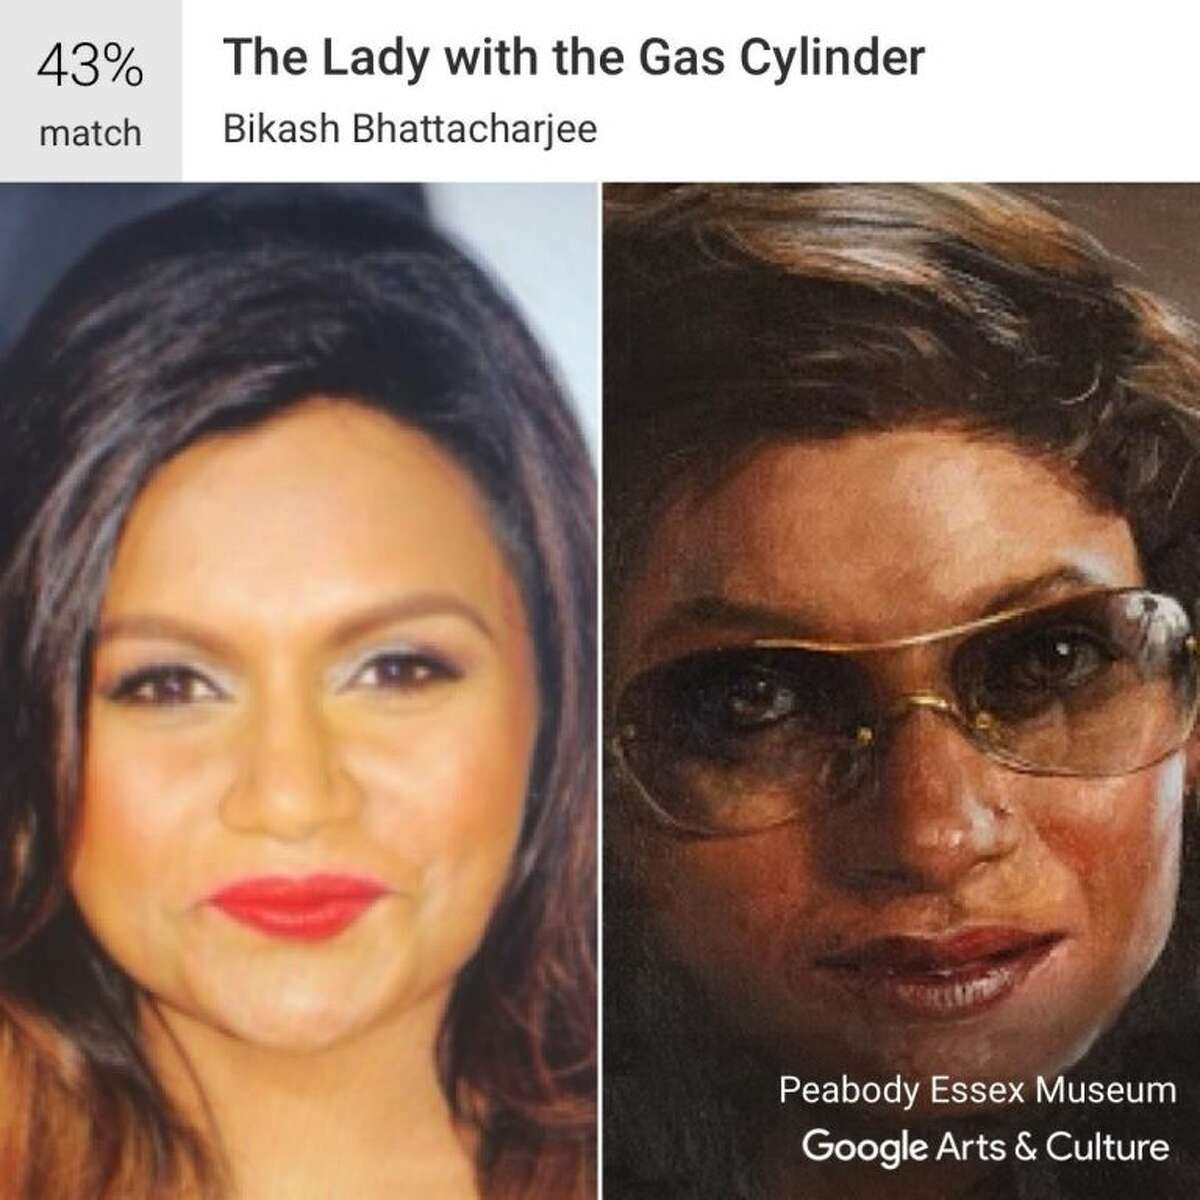 Google's Arts and Culture App compares your selfies to classic works of art and provides the best match, like this image of Mindy Kaling matched to Bikash Bhattacharjee's